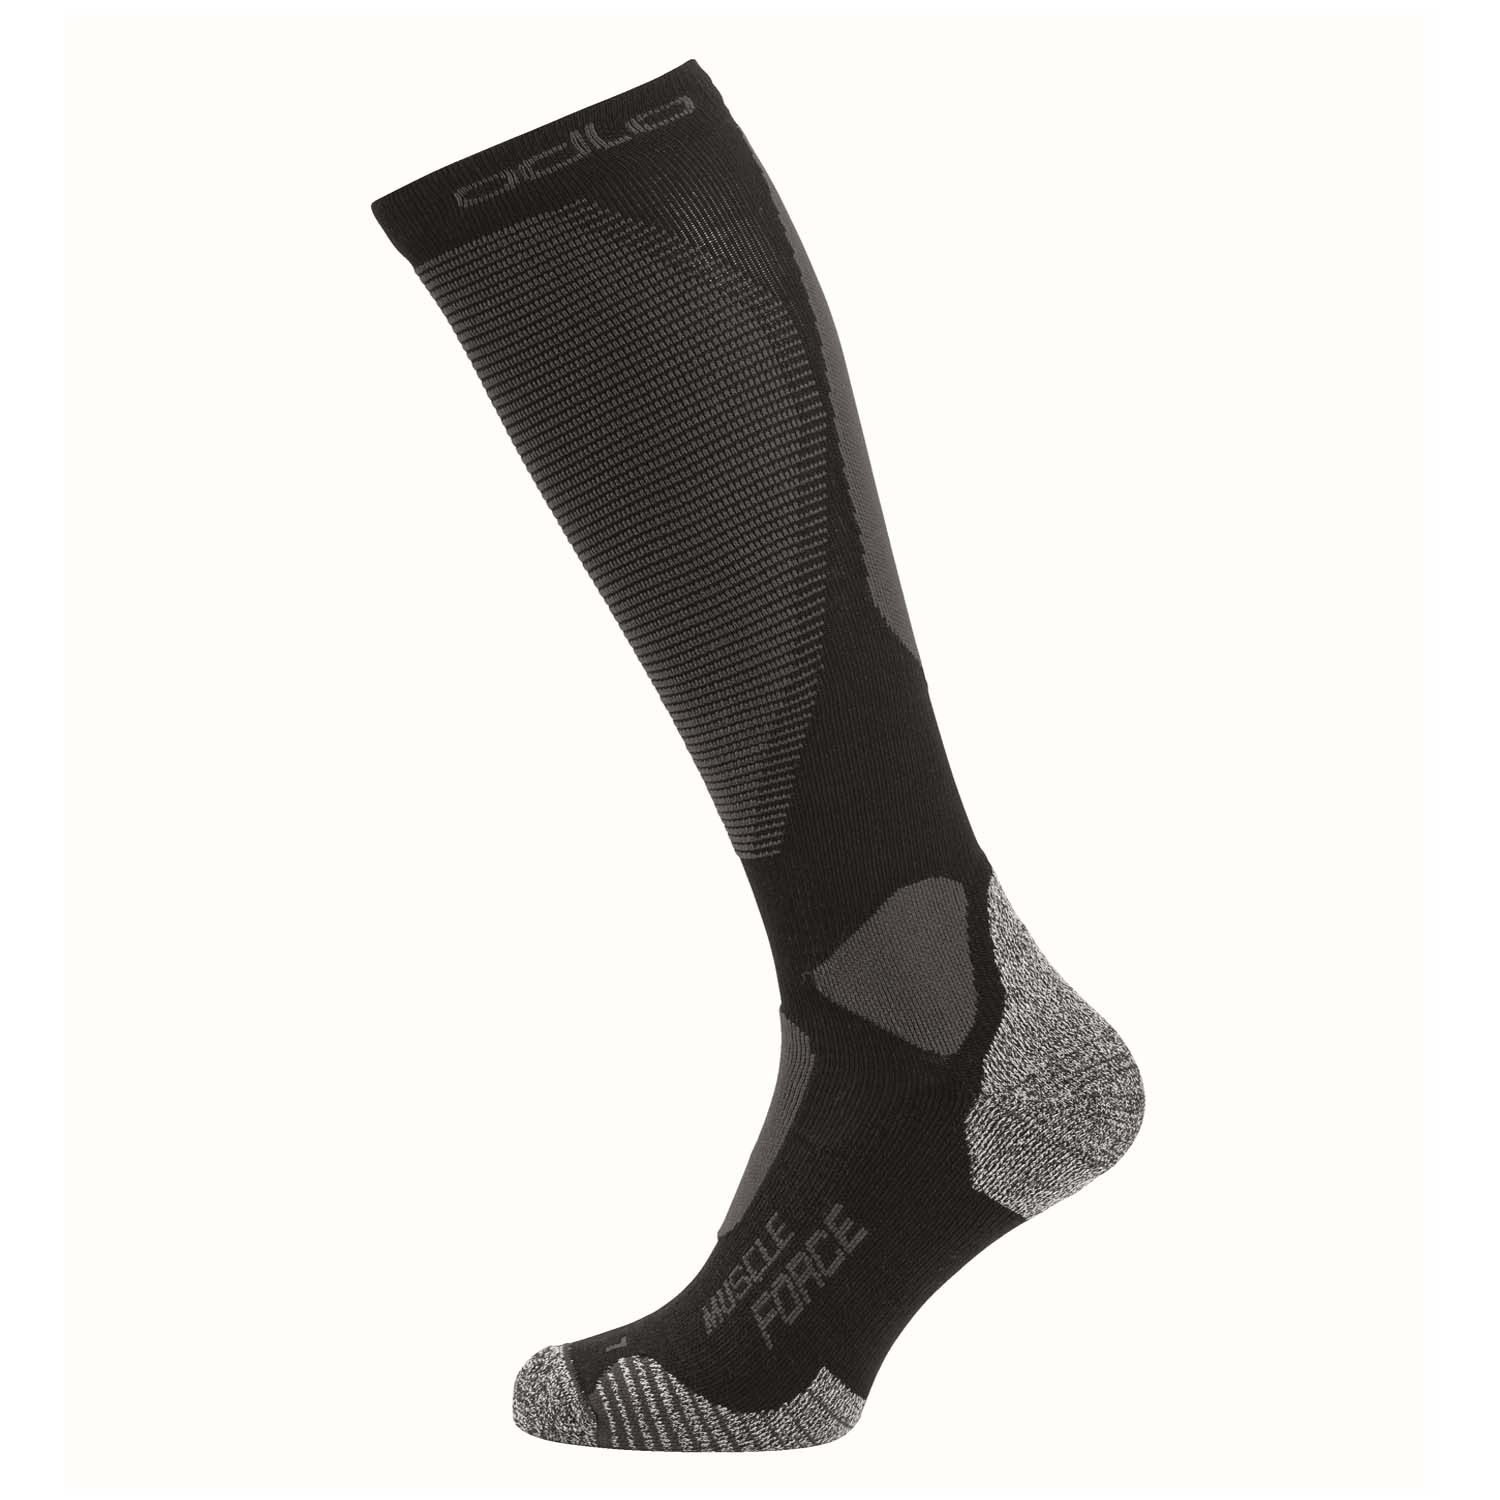 Odlo Muscle Force Ceramiwarm Light Pro Socks Black/Odlo Graphite Grey 2020